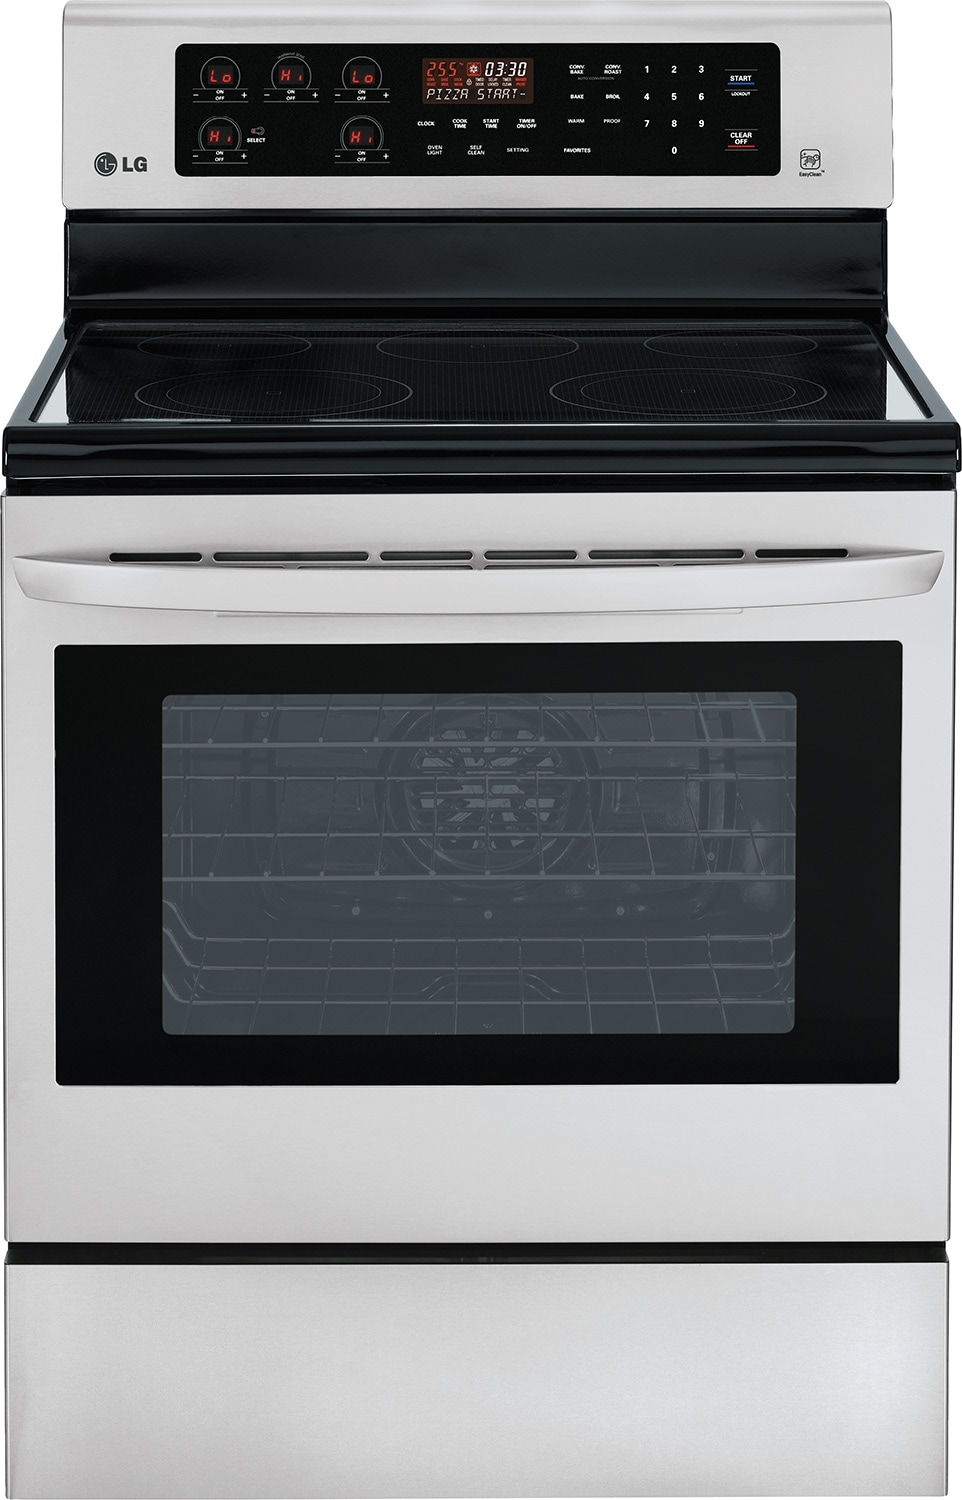 LG 6.3 Cu. Ft. Freestanding Electric Convection Range - Stainless Steel